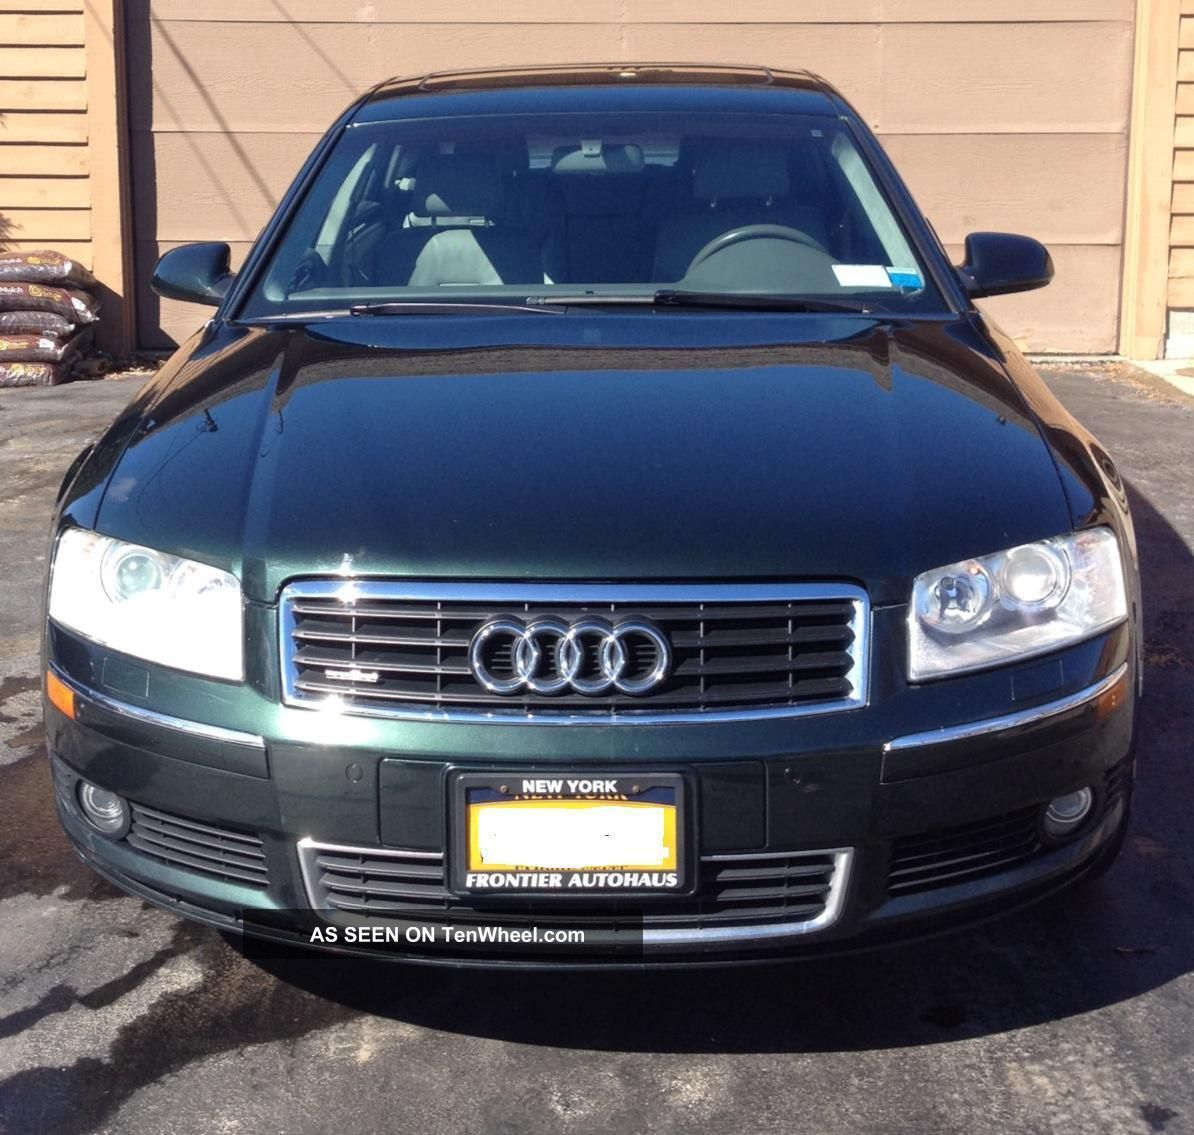 2004 Audi A8 Priced To Sell A8 photo